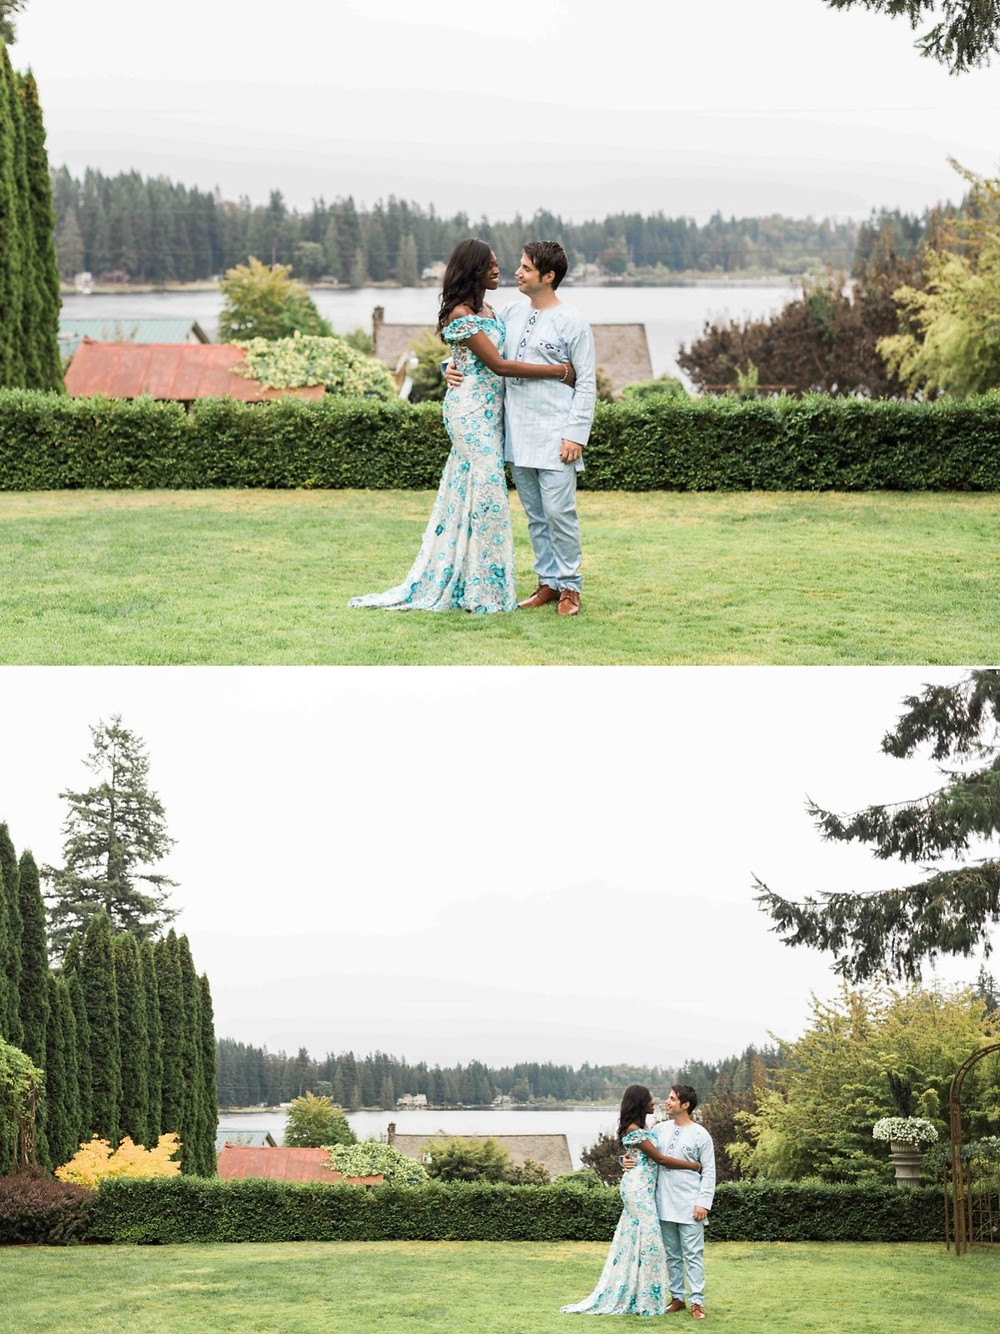 Newlywed couples portraits after their wedding at Green Gates at Flowing Lake, a wedding venue in Snohomish near Seattle, WA. | My Snohomish Wedding | Snohomish Wedding Planning